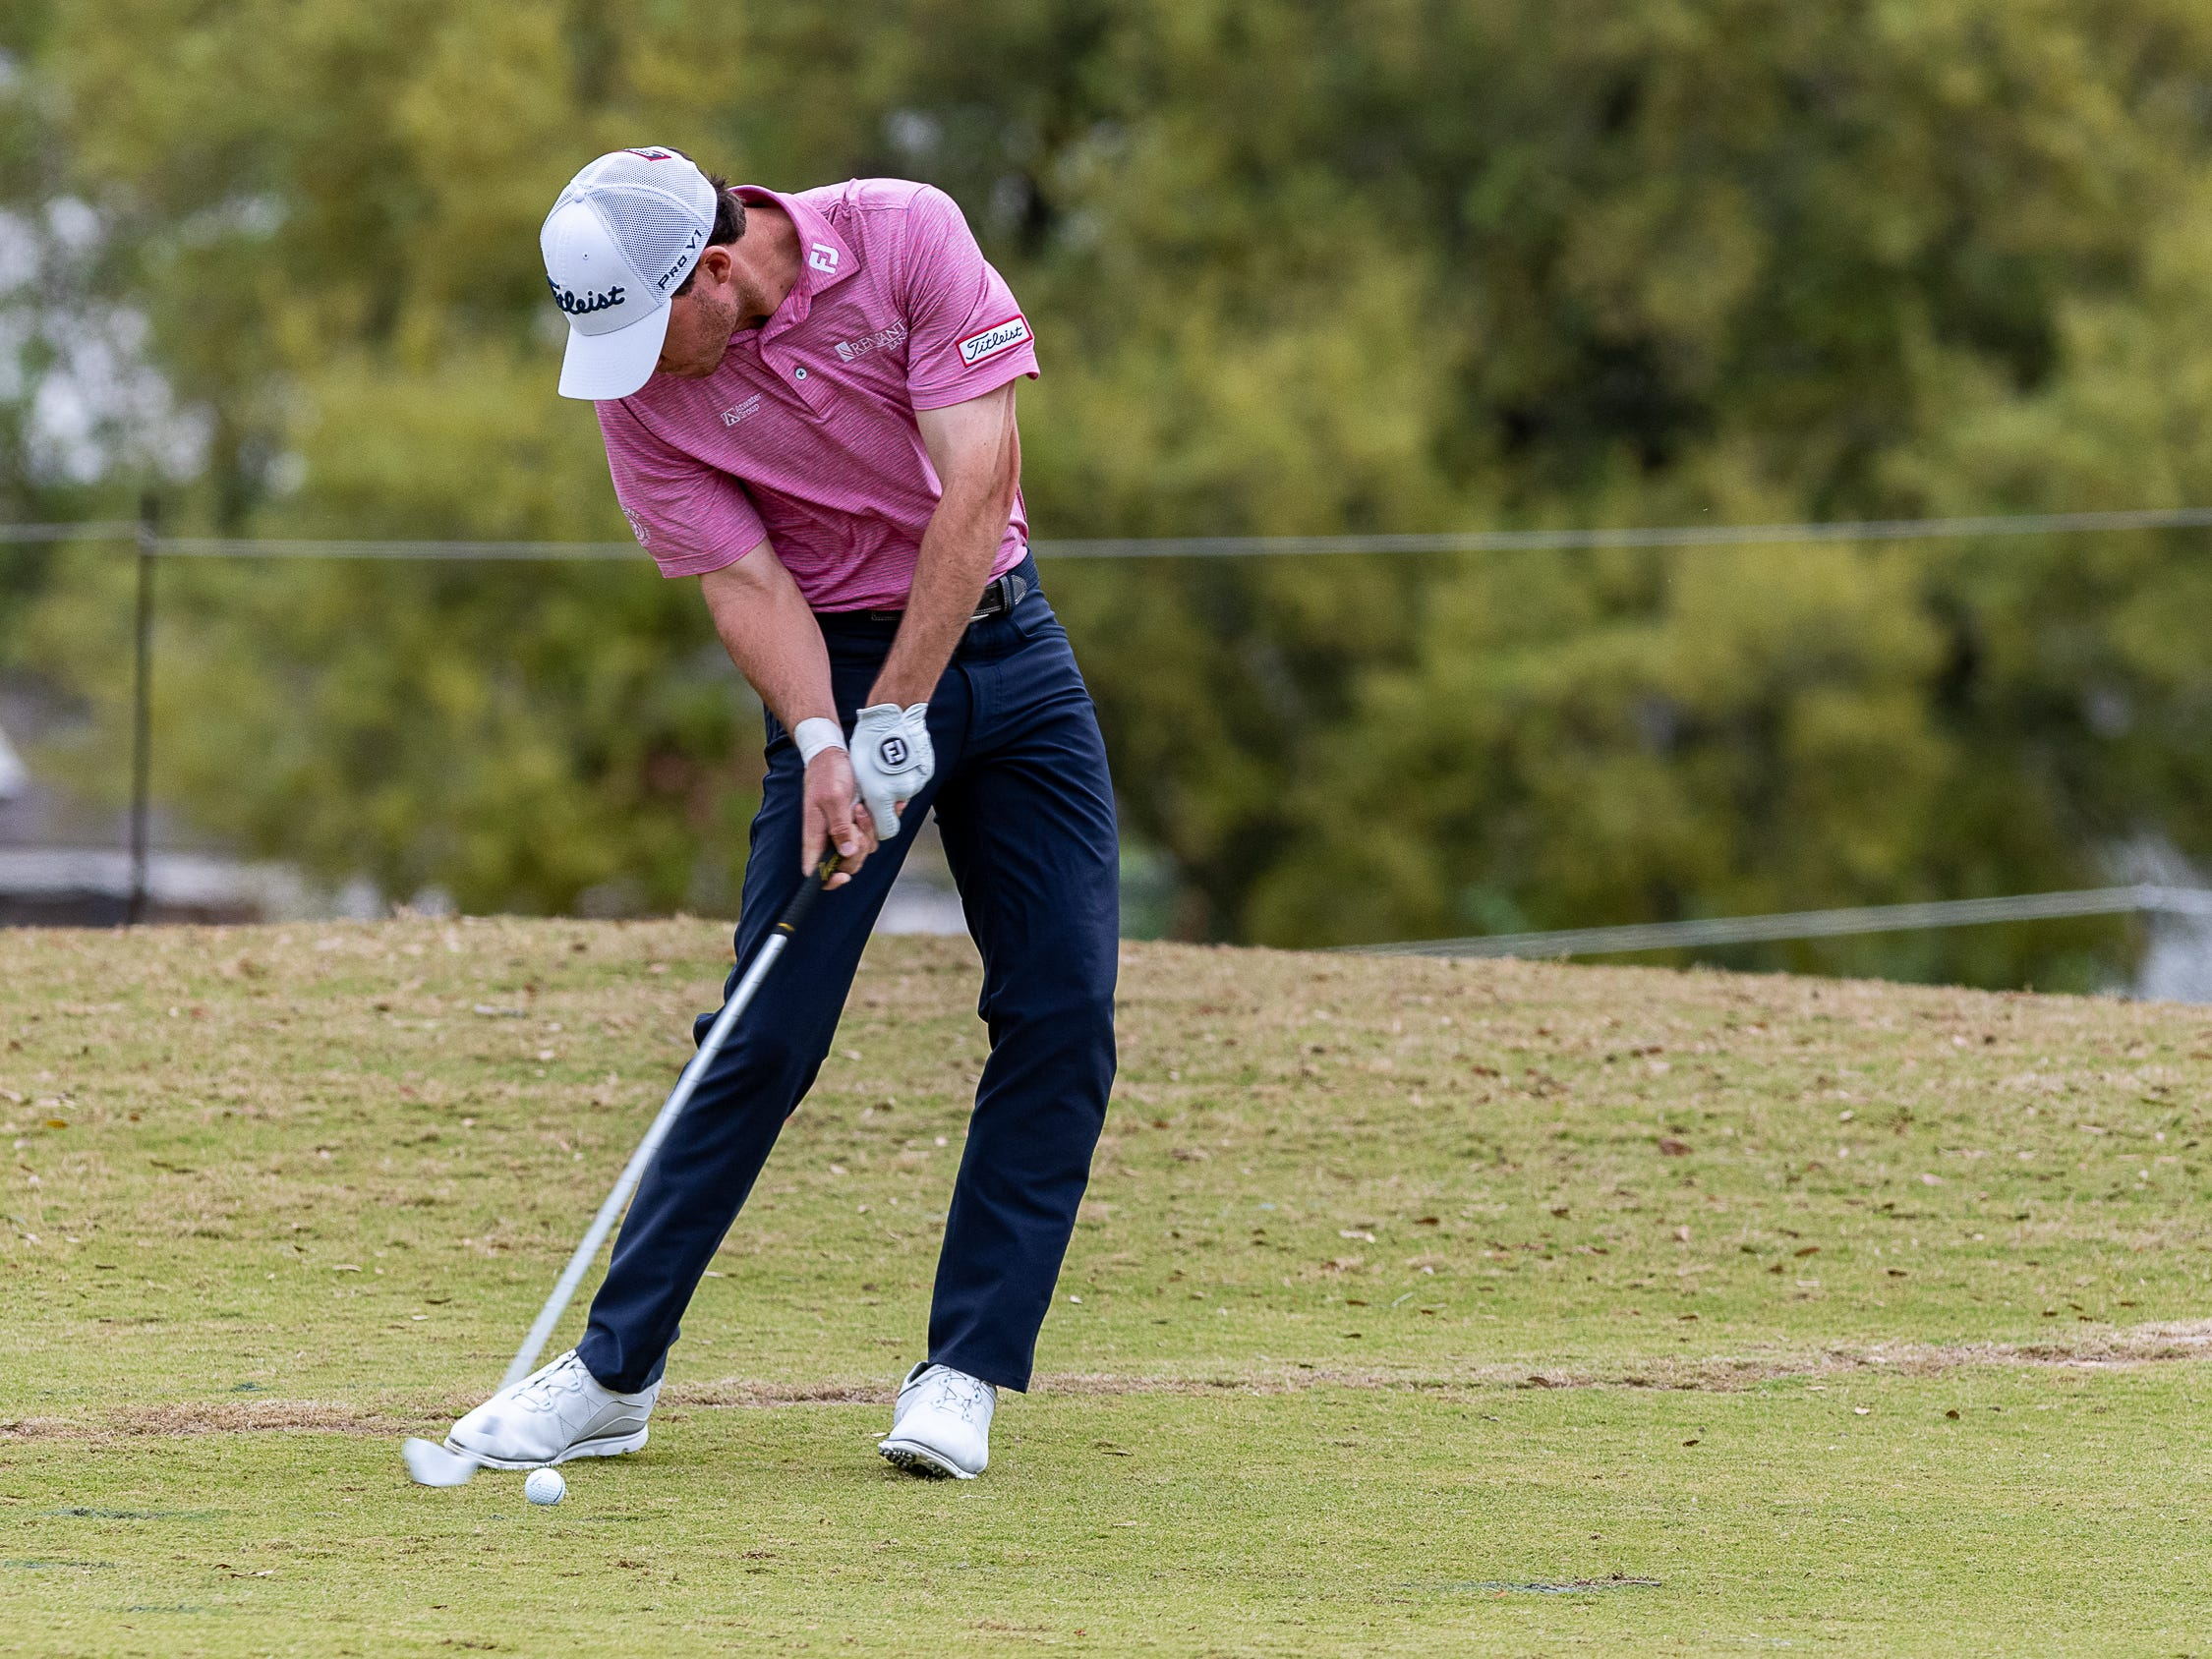 Michael Johnson during the final round of the Web.com 2019 Chitimacha Louisiana Open presented by Mistras at Le Triomphe. Sunday, March 24, 2019.